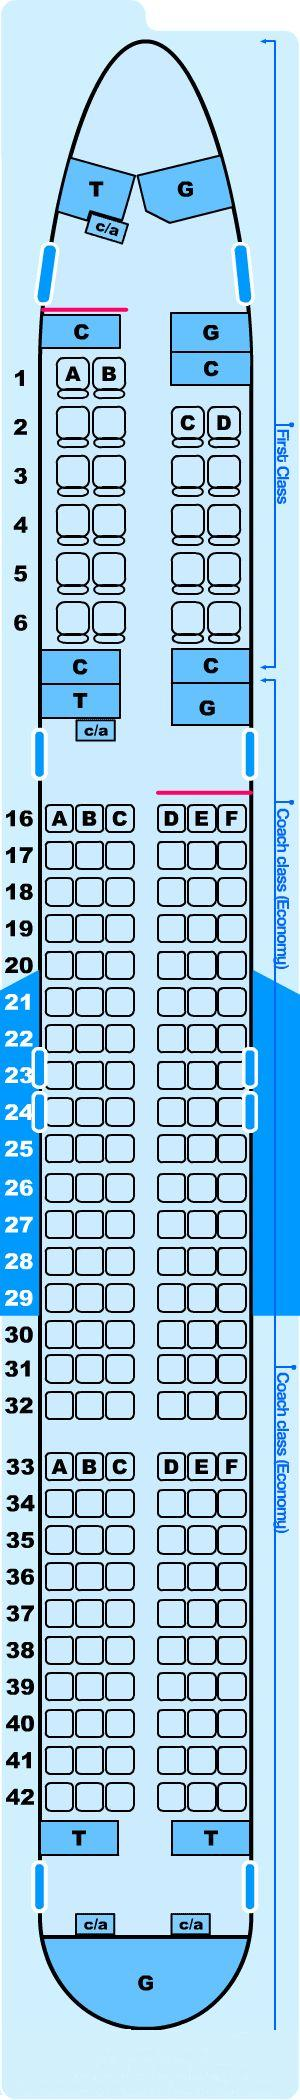 Seat map for Northwest Airlines Boeing B757-200 (5600) Domestic